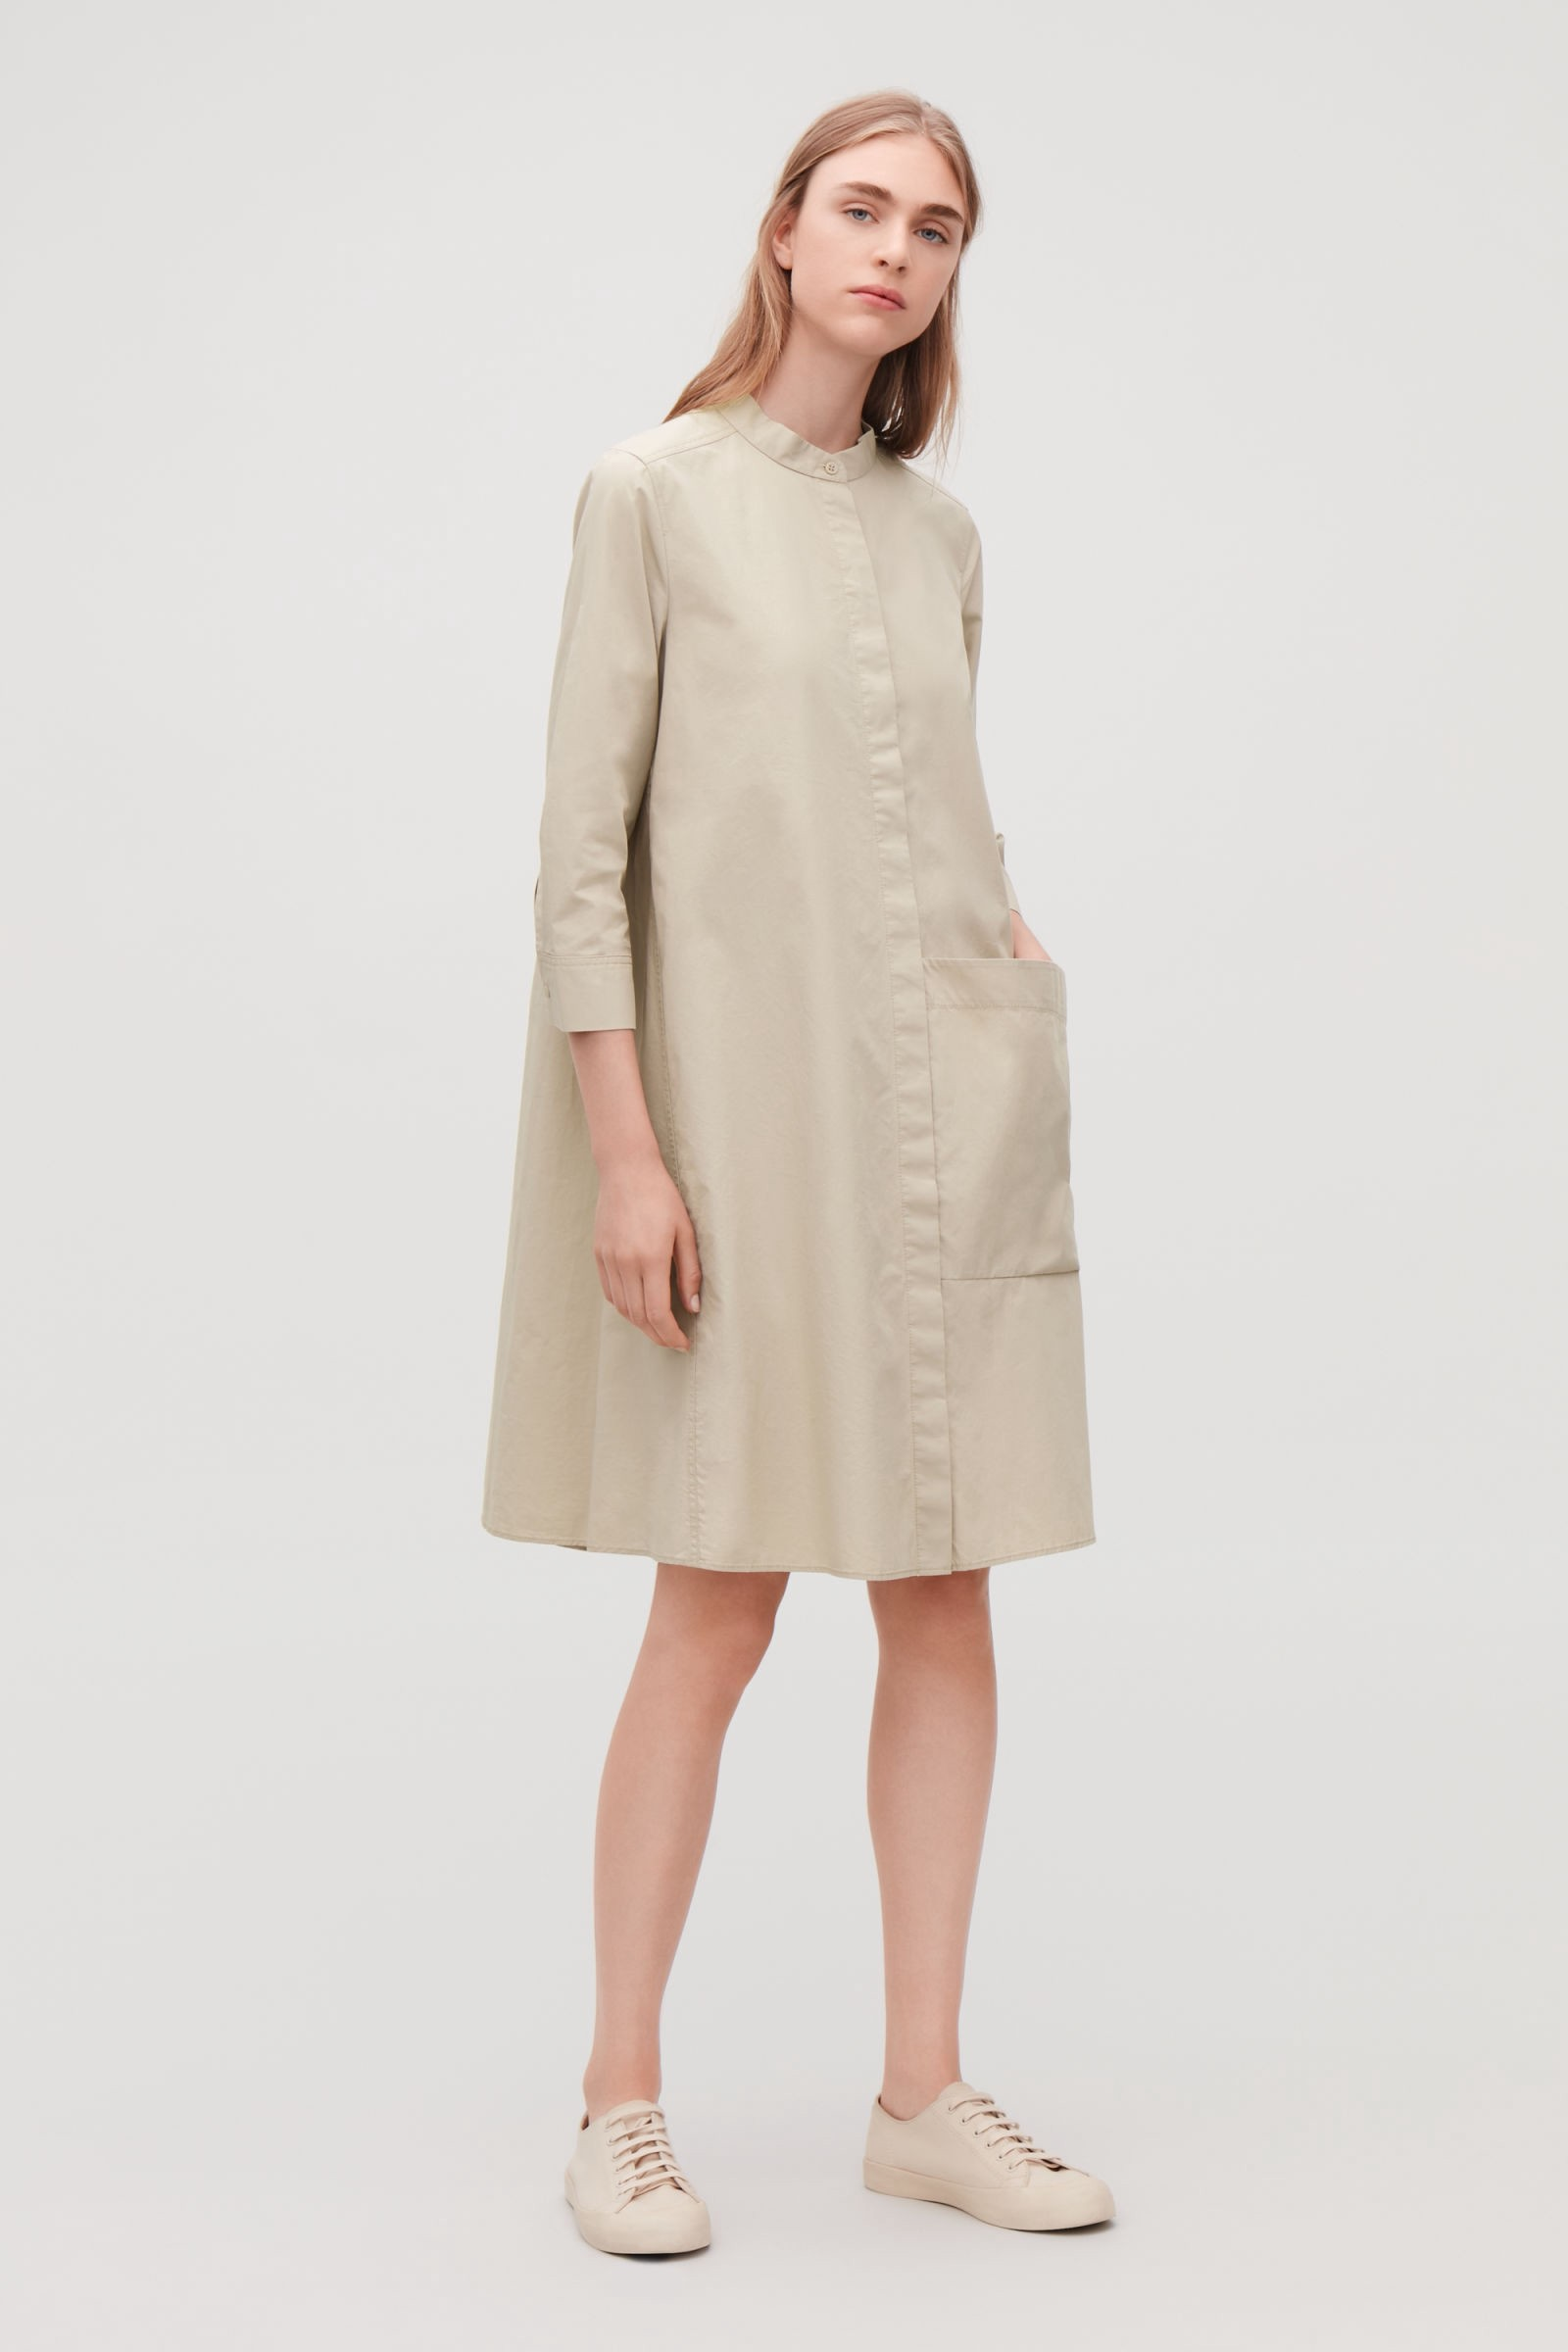 4531d243769a SHIRT DRESS WITH LARGE POCKET - beige by COS in 2019 | Products ...